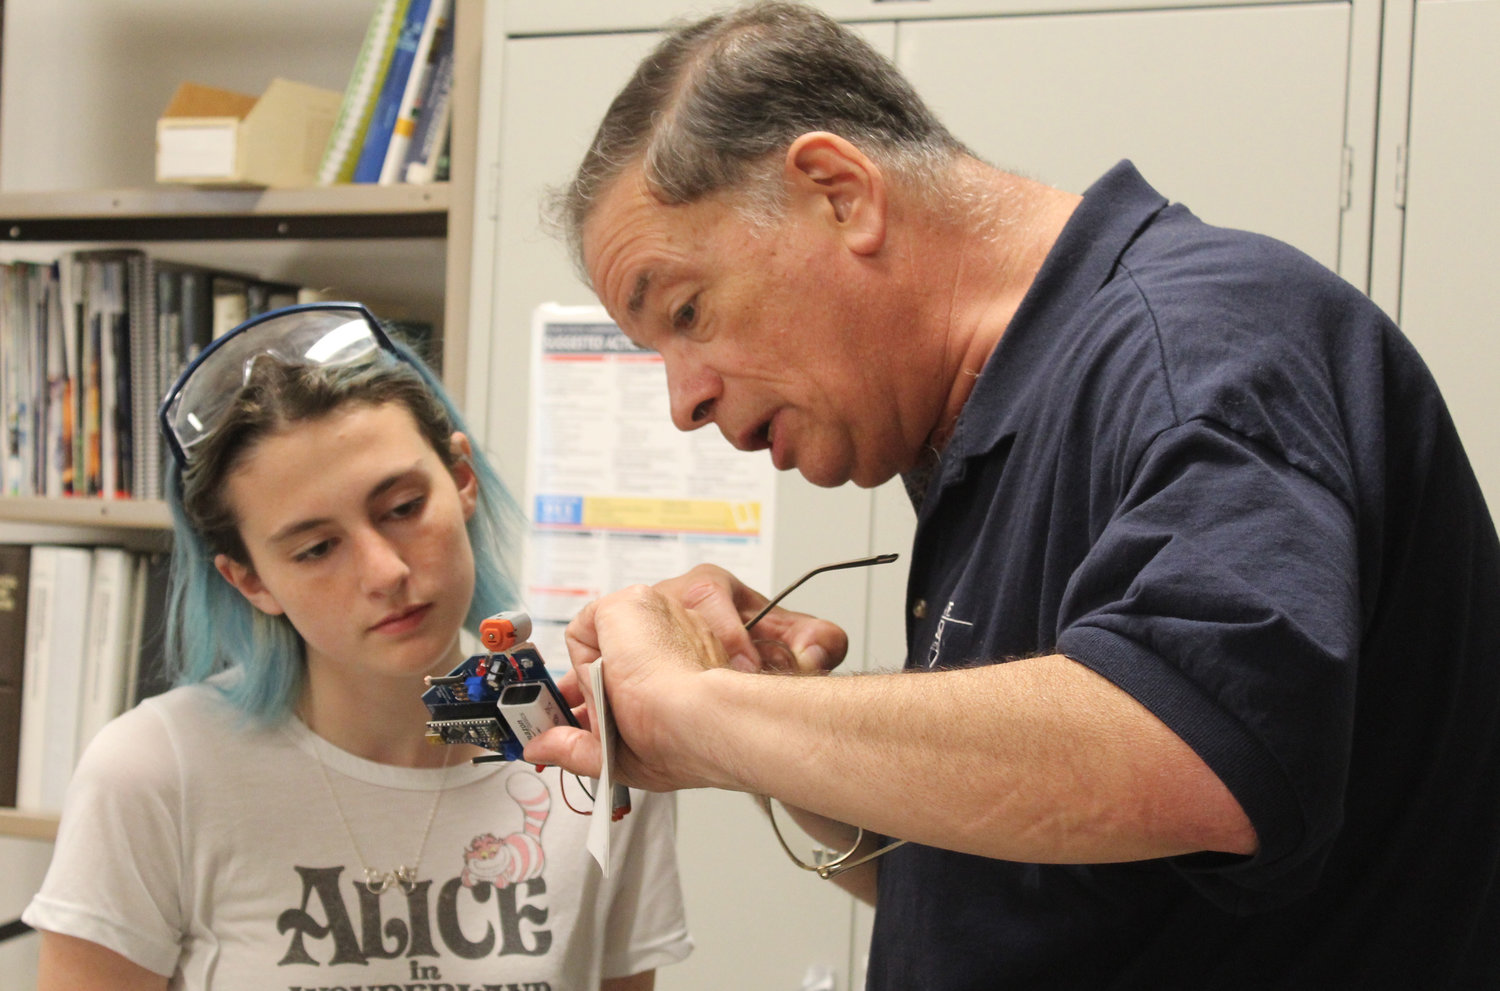 Seth Wolpert, Associate Professor of Electrical Engineering, School of Science, Engineering, and Technology, works with Lower Dauphin student Sierra Endy during Penn State Harrisburg's STEM Summer Enrichment Program's electrical engineering lab on June 19.